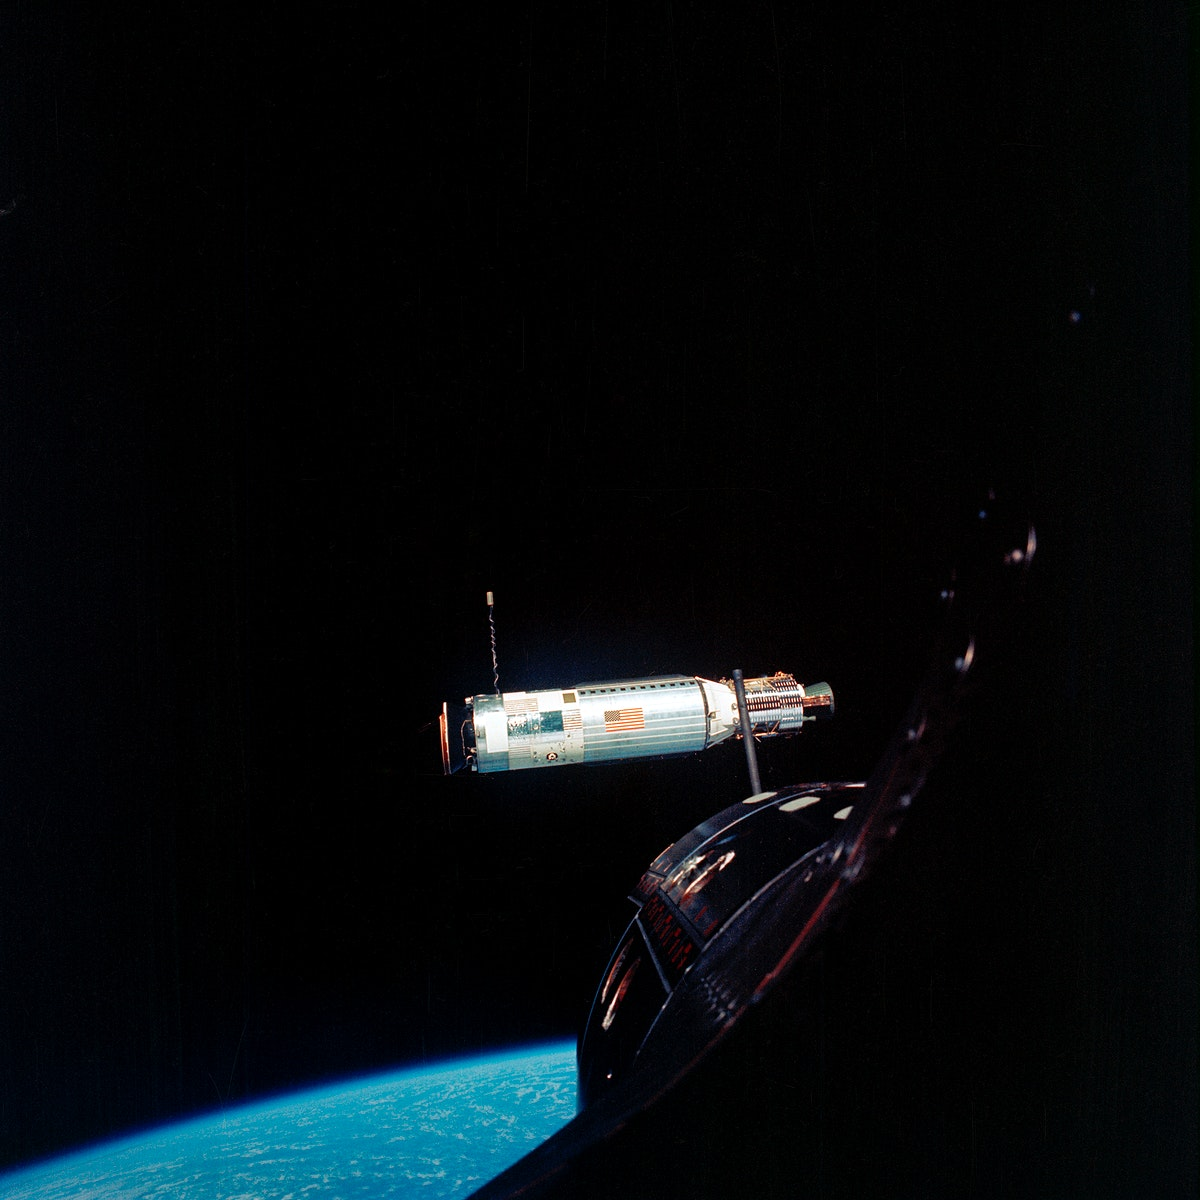 Agena Target Docking Vehicle photographed from Gemini 10 spacecraft. Original from NASA. Digitally enhanced by rawpixel.